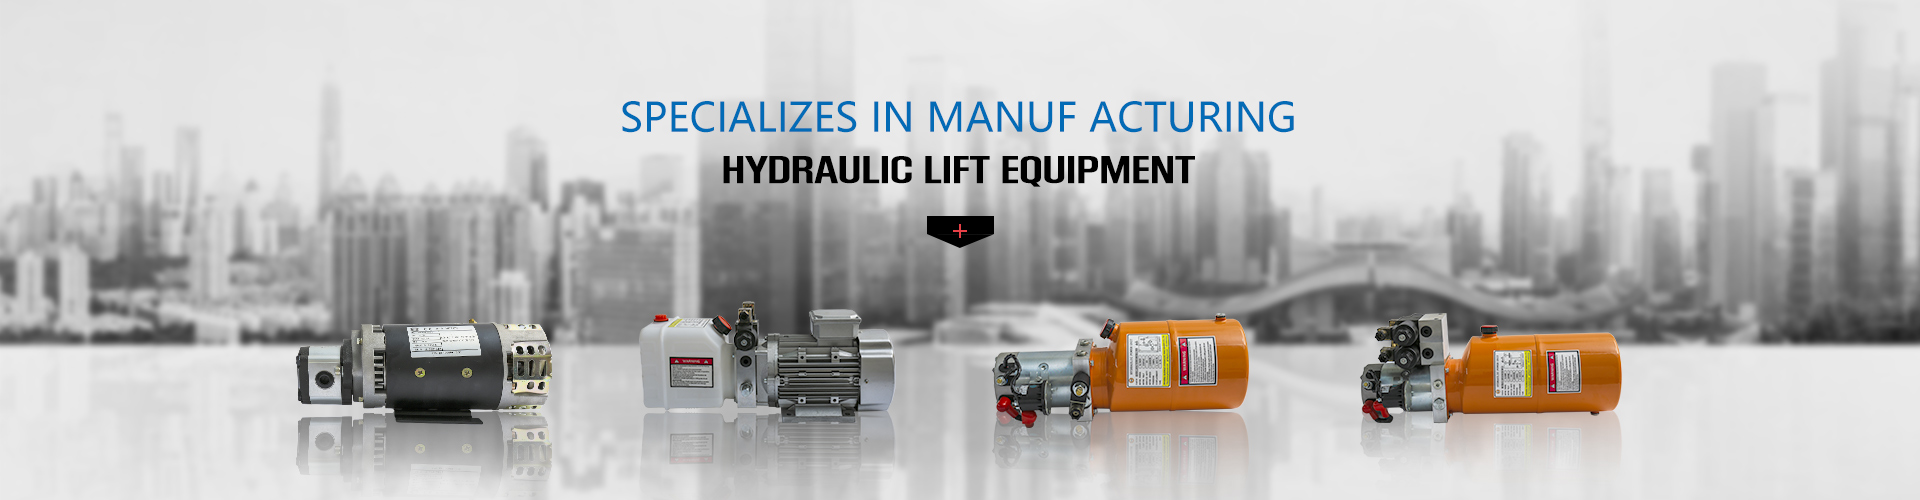 hydraulic lift equipment